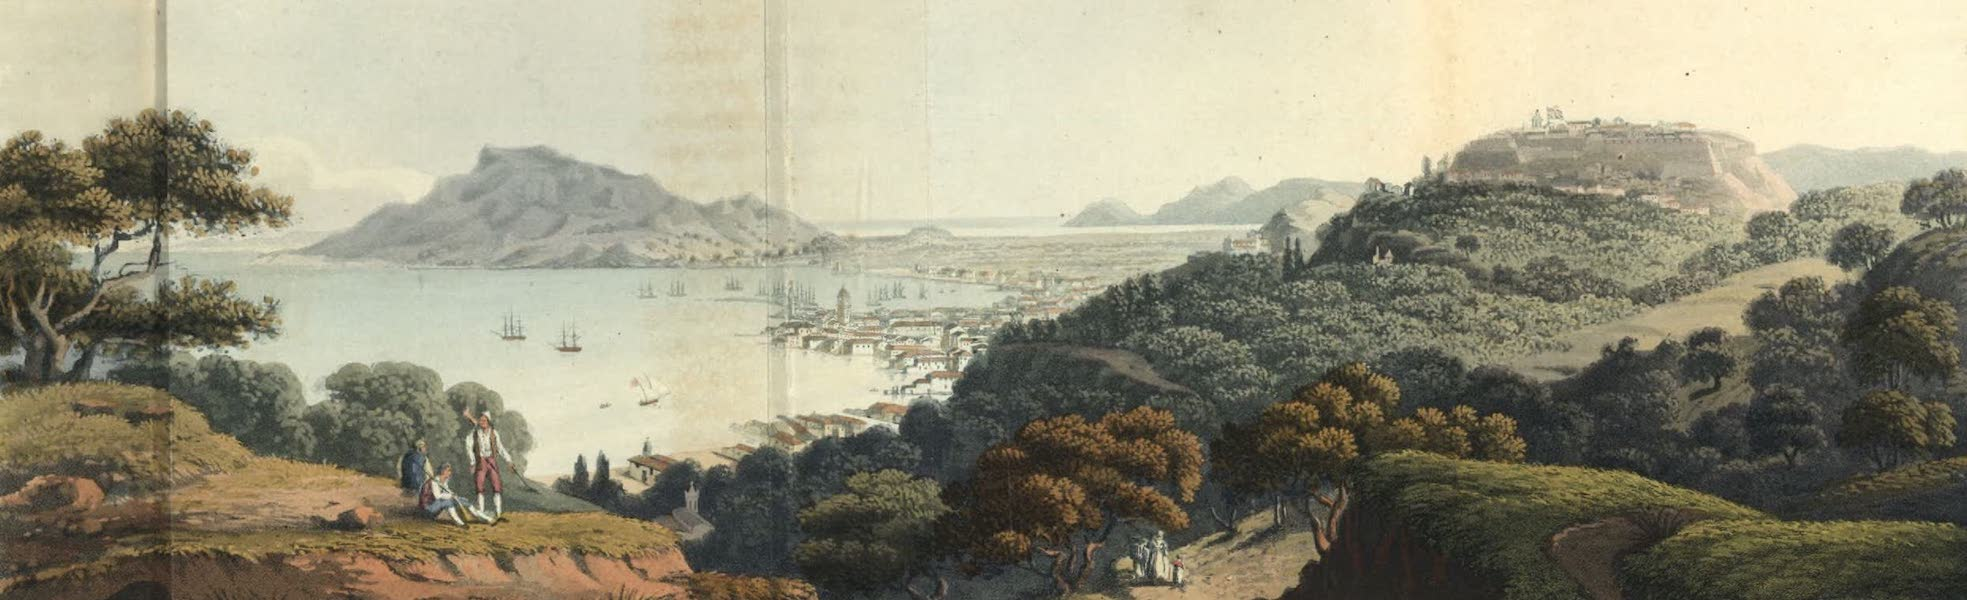 Journal of a Tour in the Levant Vol. 1 - Zante (1820)